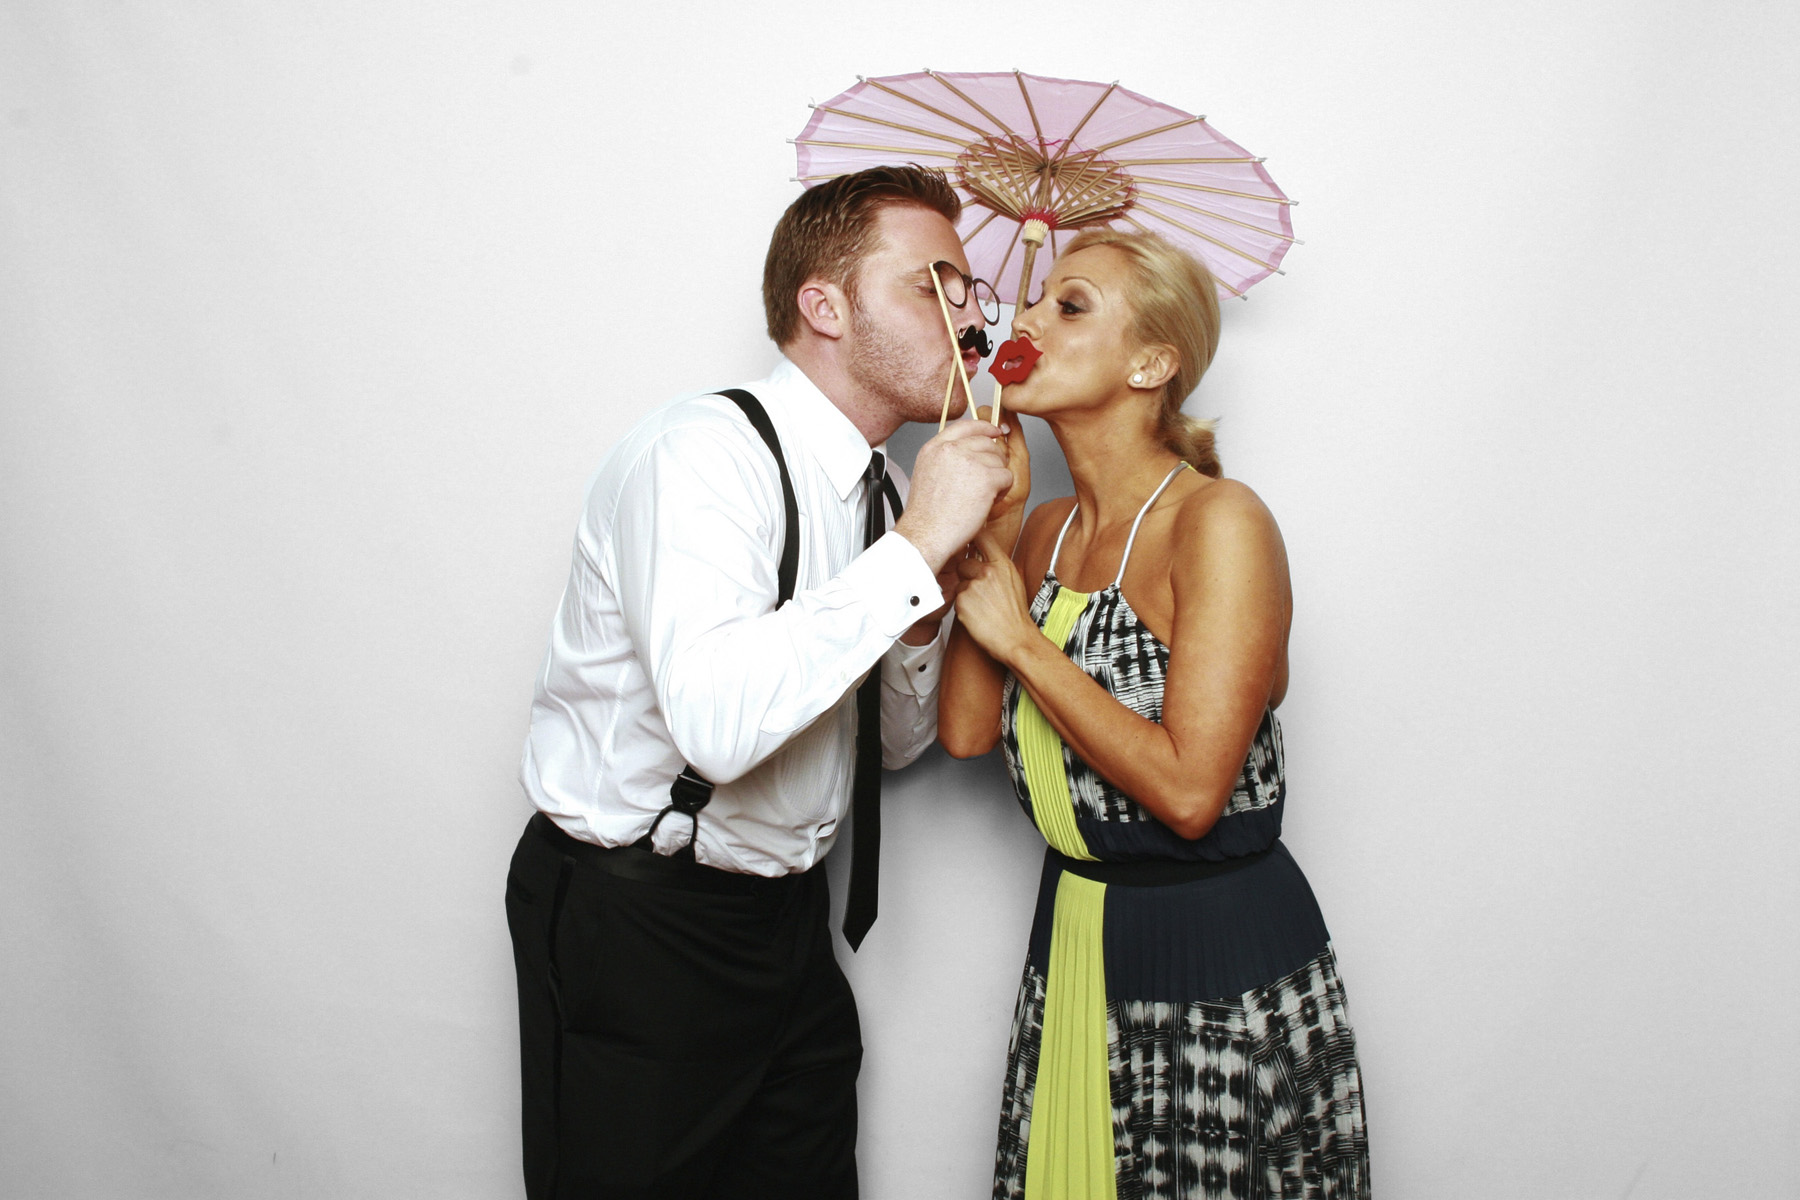 New York City Photo Booth at Chelsea Piers with couple holding umbrella and stick props